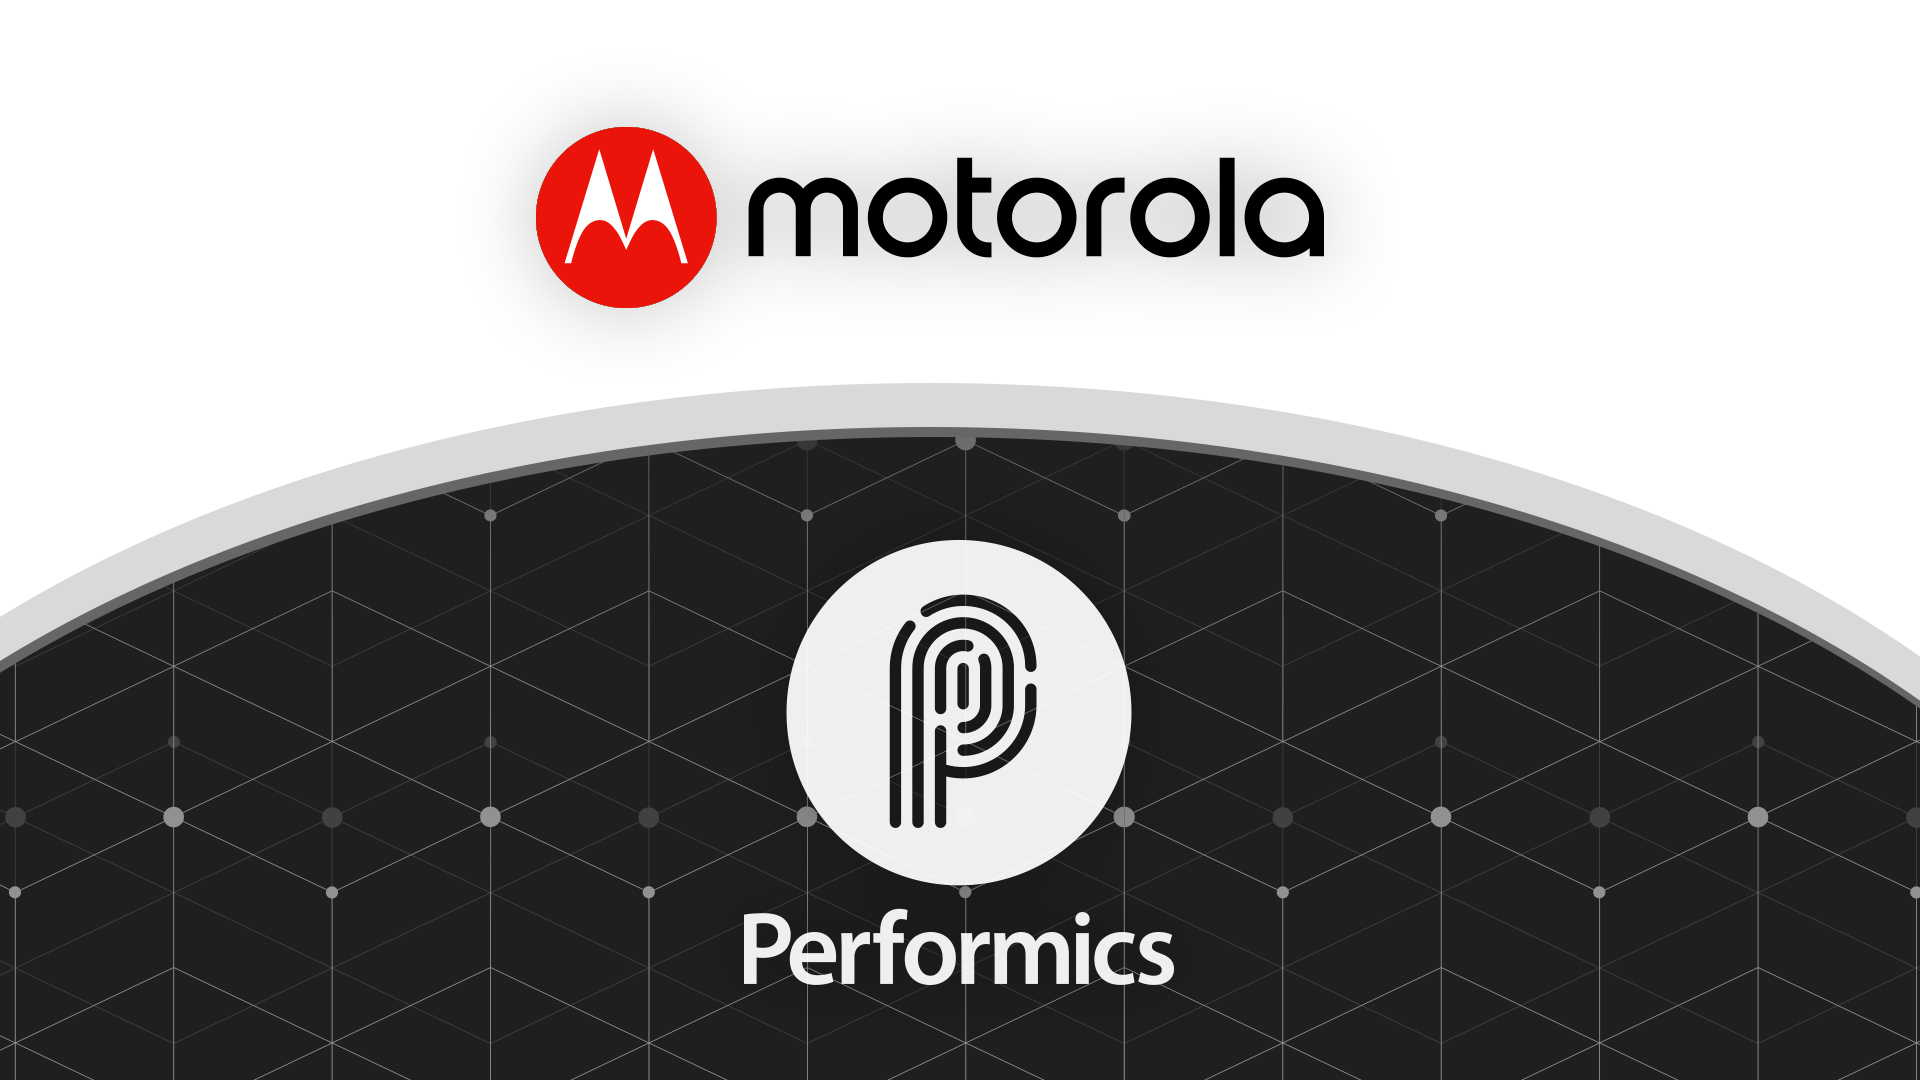 Case study: Performics + Motorola